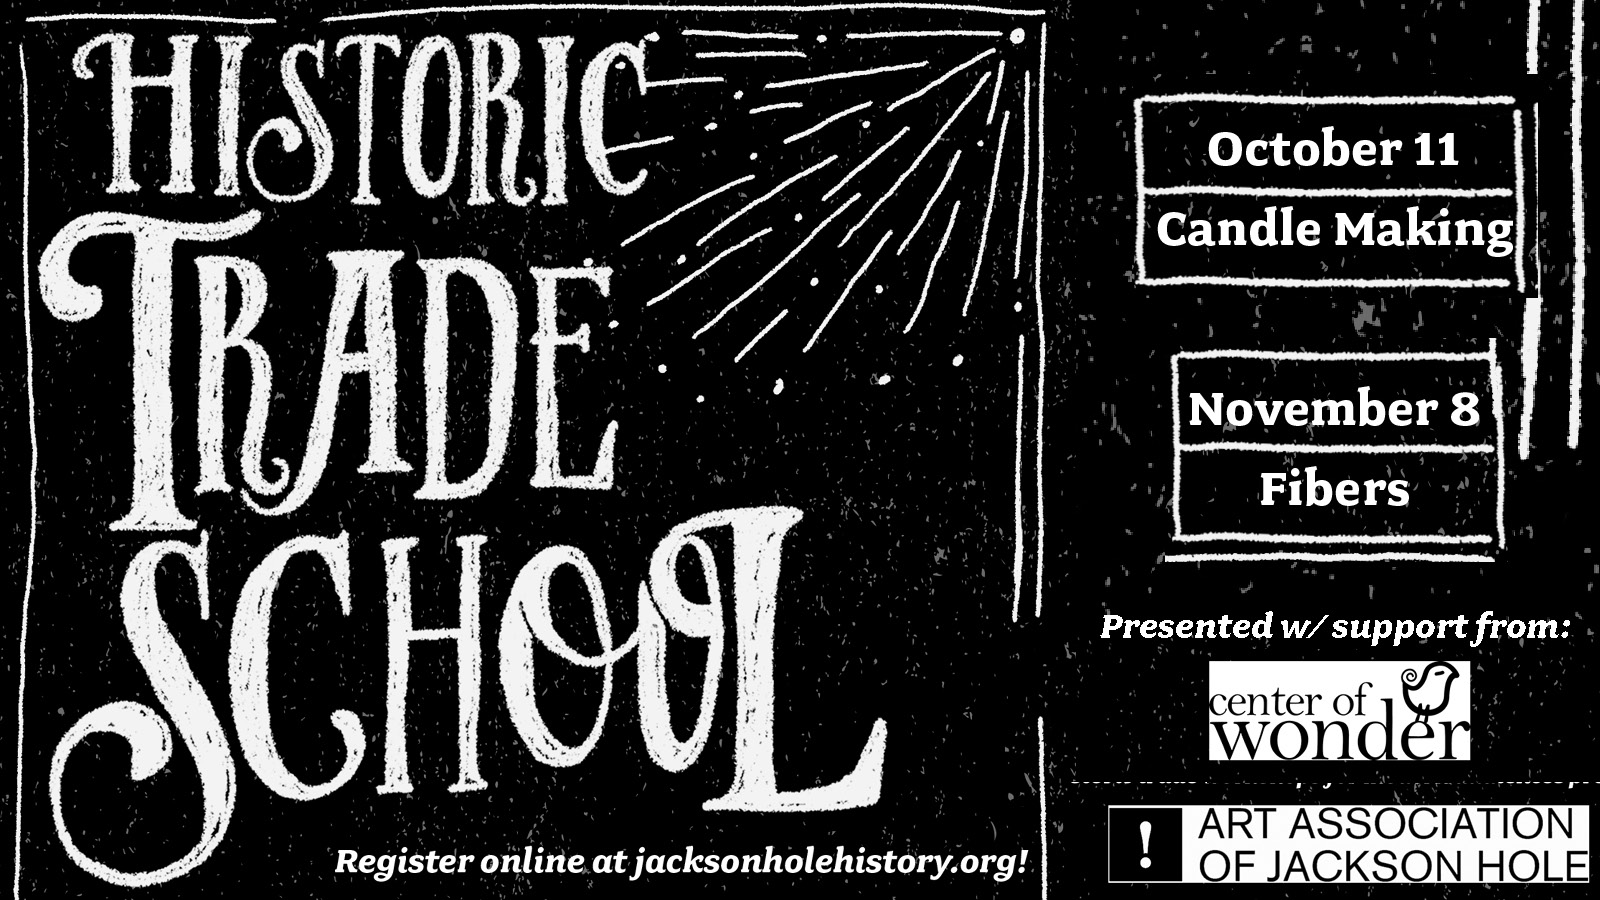 Historic Trade School - Candle Making @ Jackson Hole Historical Society and Museum - Mercill Education Center | Jackson | Wyoming | United States